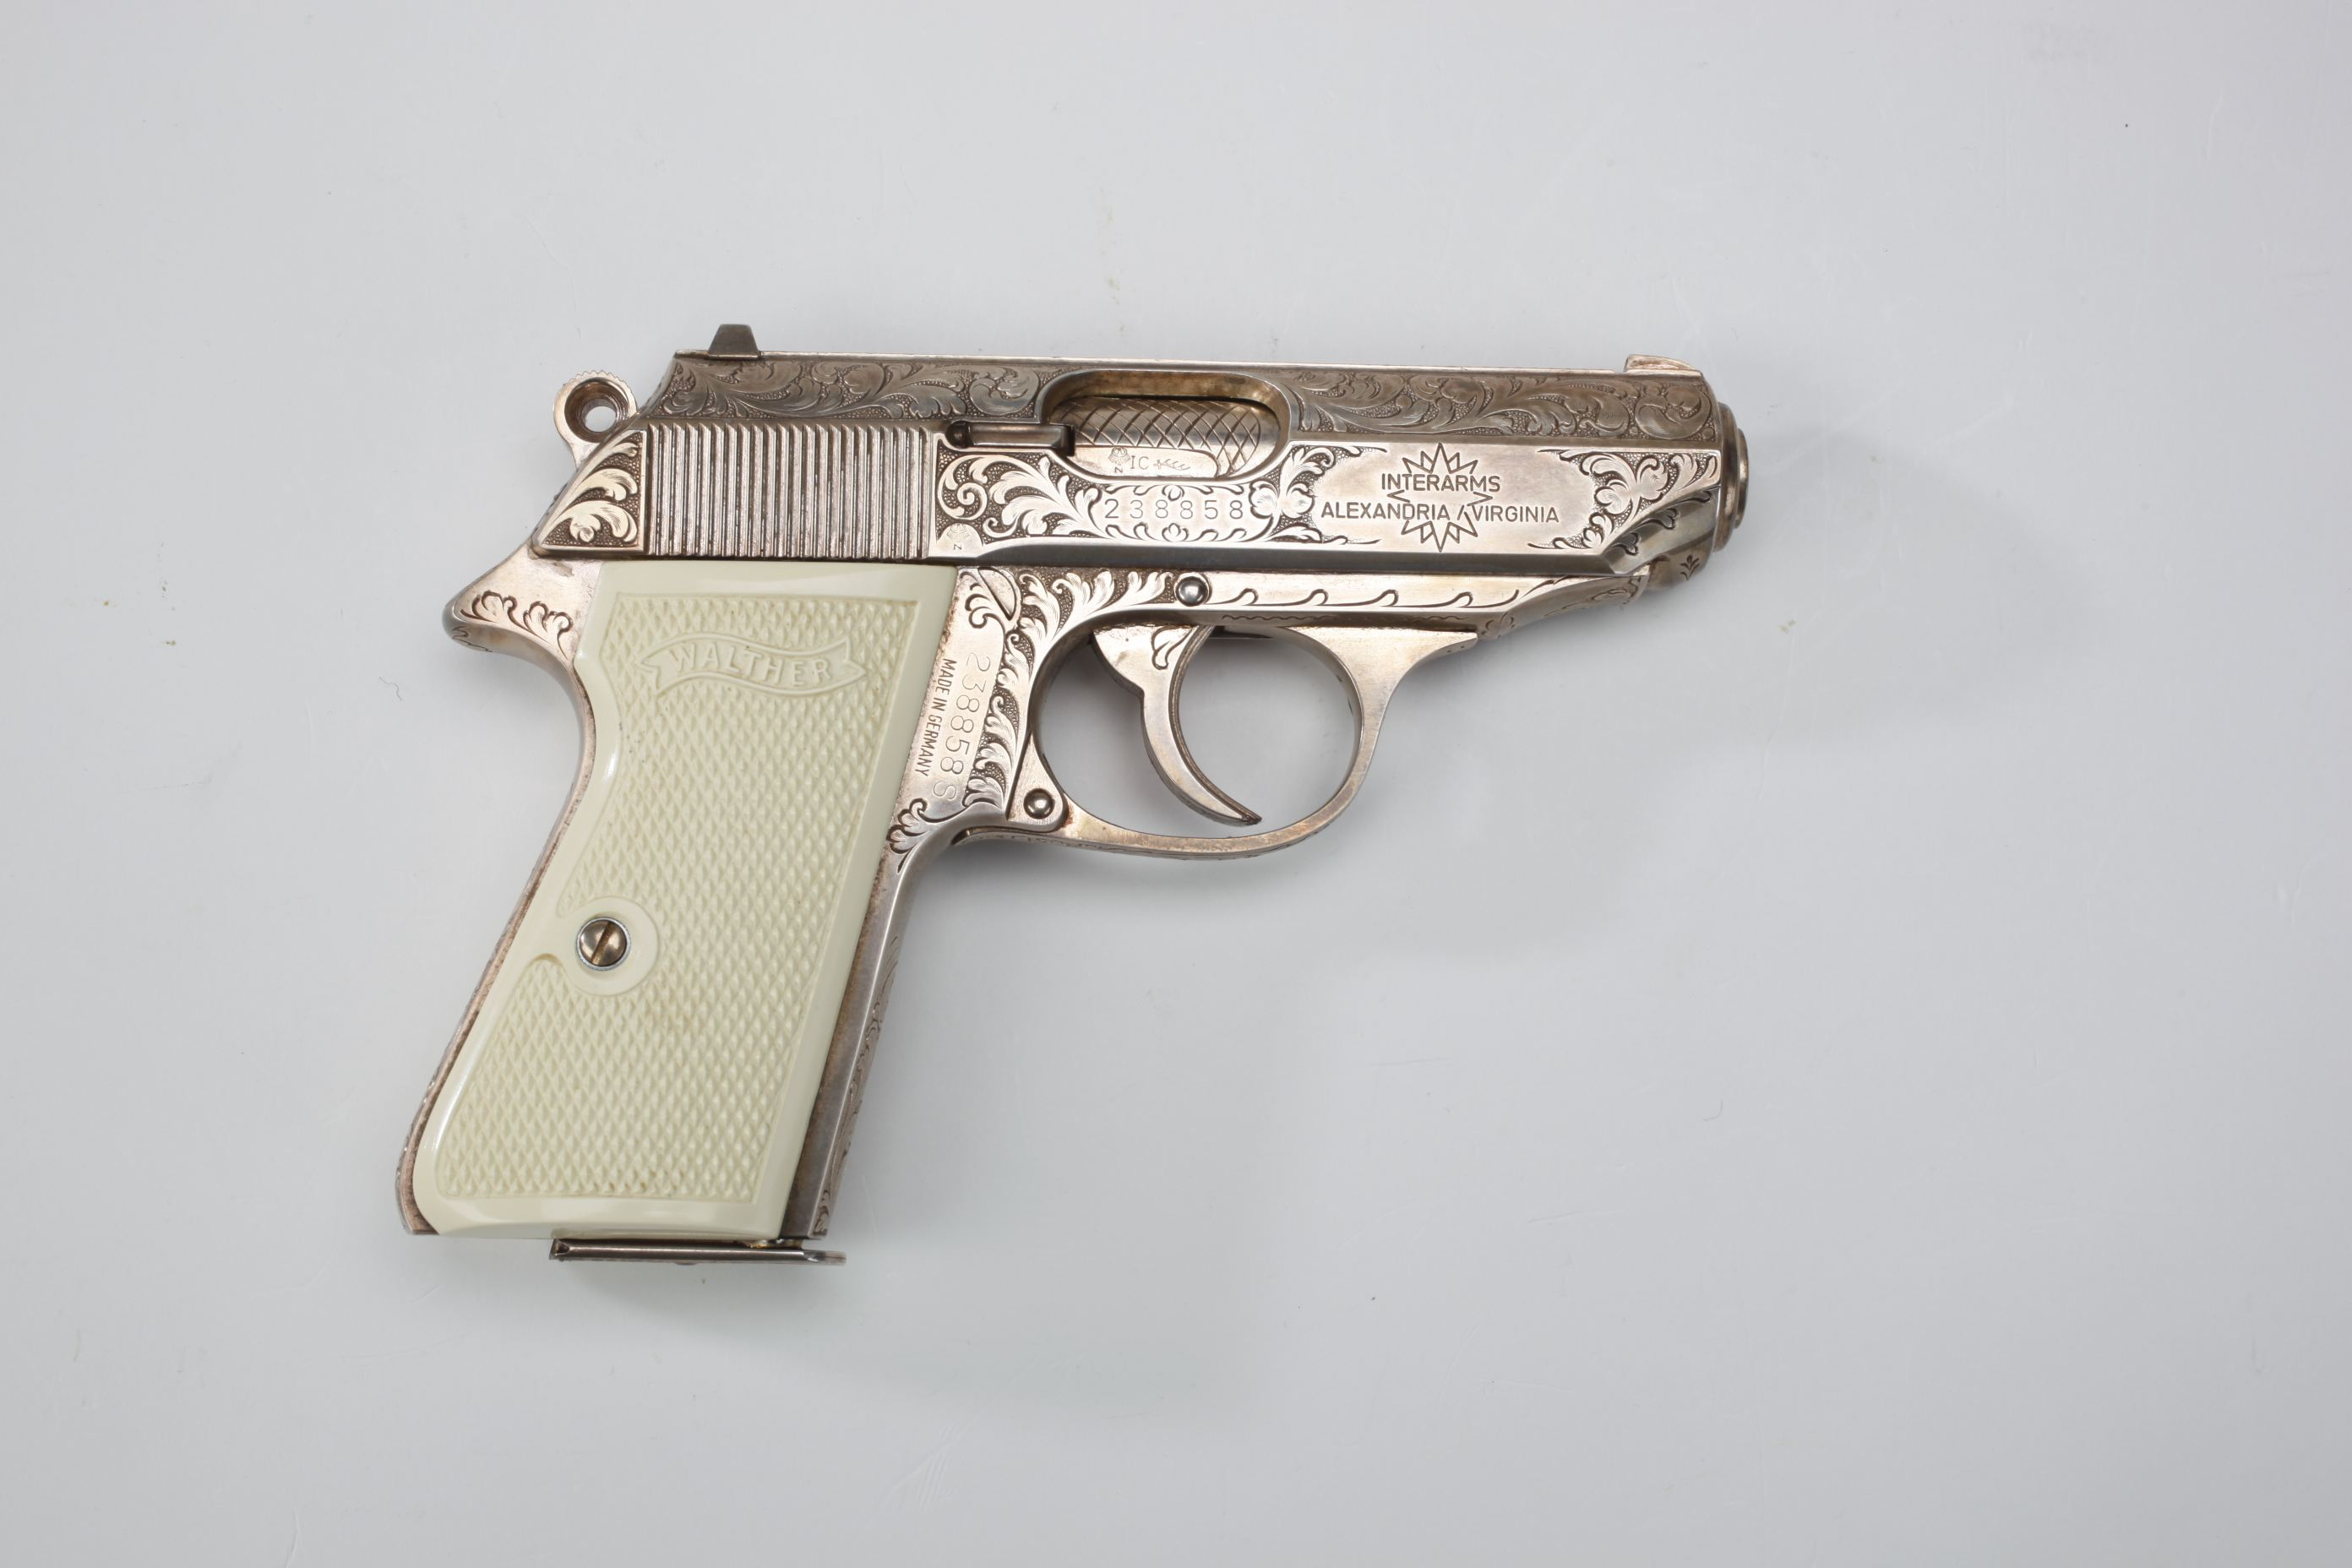 Walther (Ulm, Germany) PPK-S Semi-Automatic Pistol